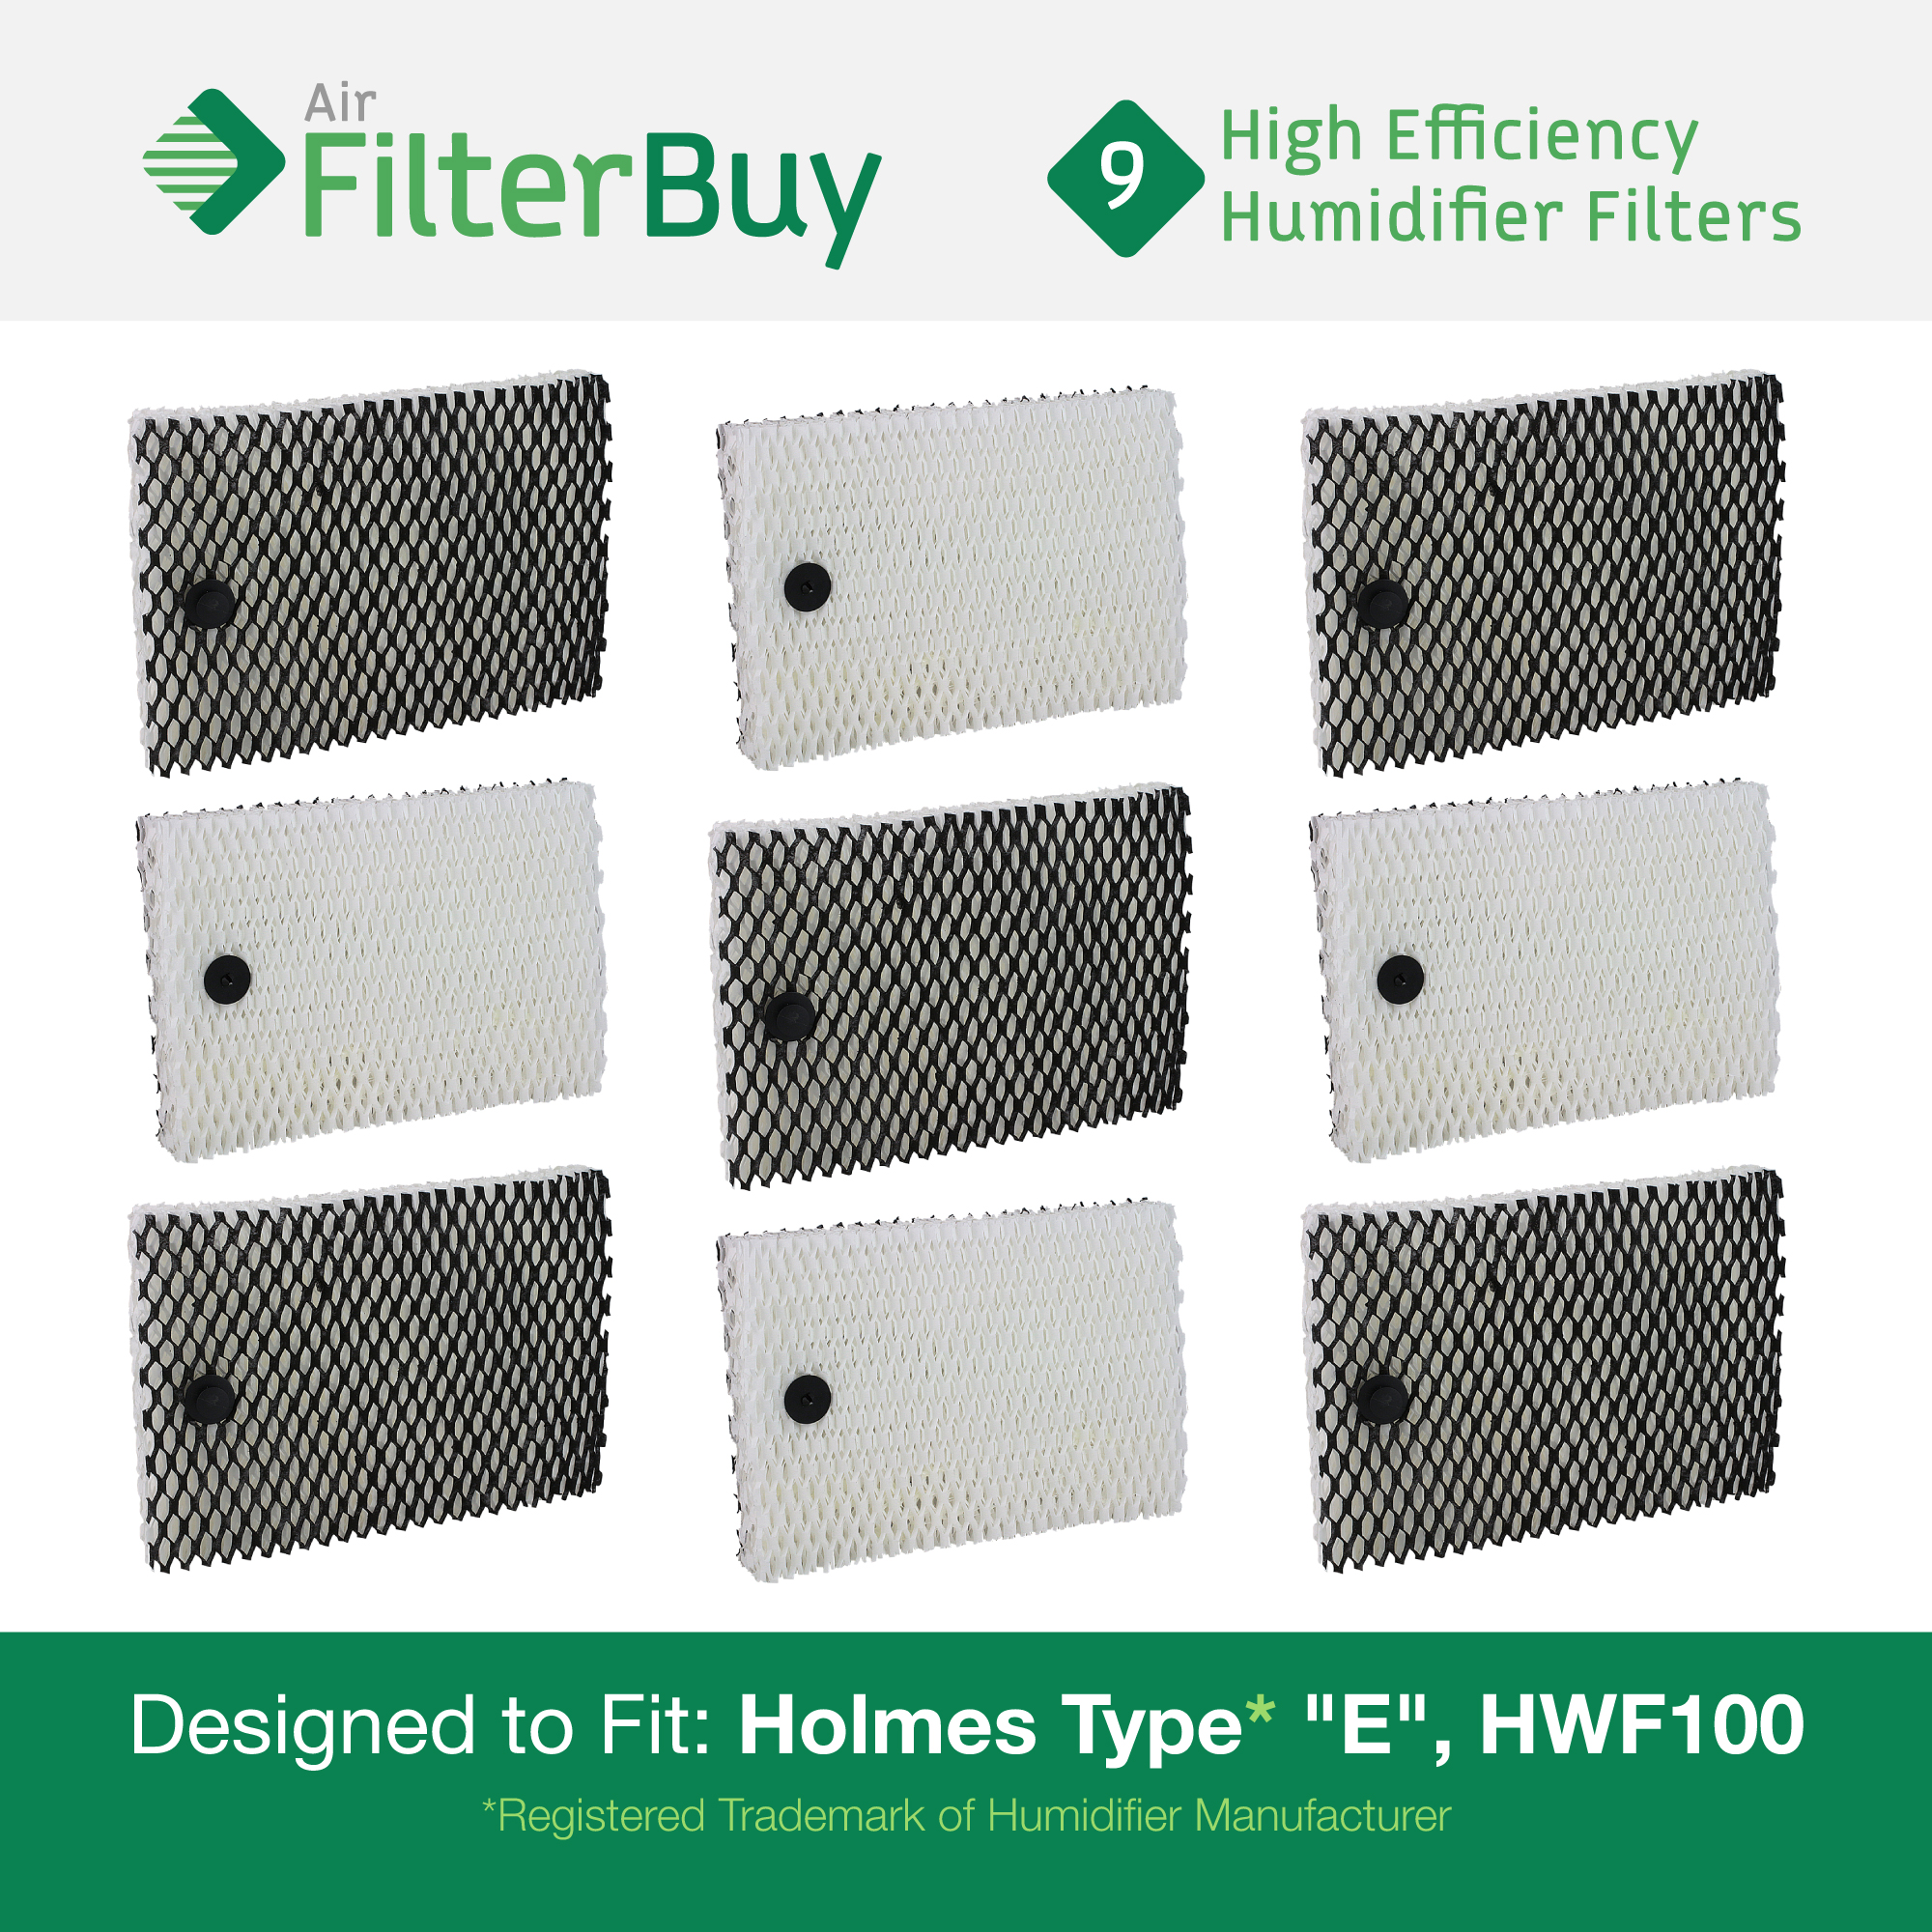 """9 - Holmes Type """"E"""" HWF100, Bionaire BWF100 Humidifier Replacement Filters. Designed by FilterBuy to fit HM630, HM729G, HM7203, HM7203RV, HM7204, HM7808, HM7305, HM730RC, HM7306RC, HM7405 & HM7405RC."""